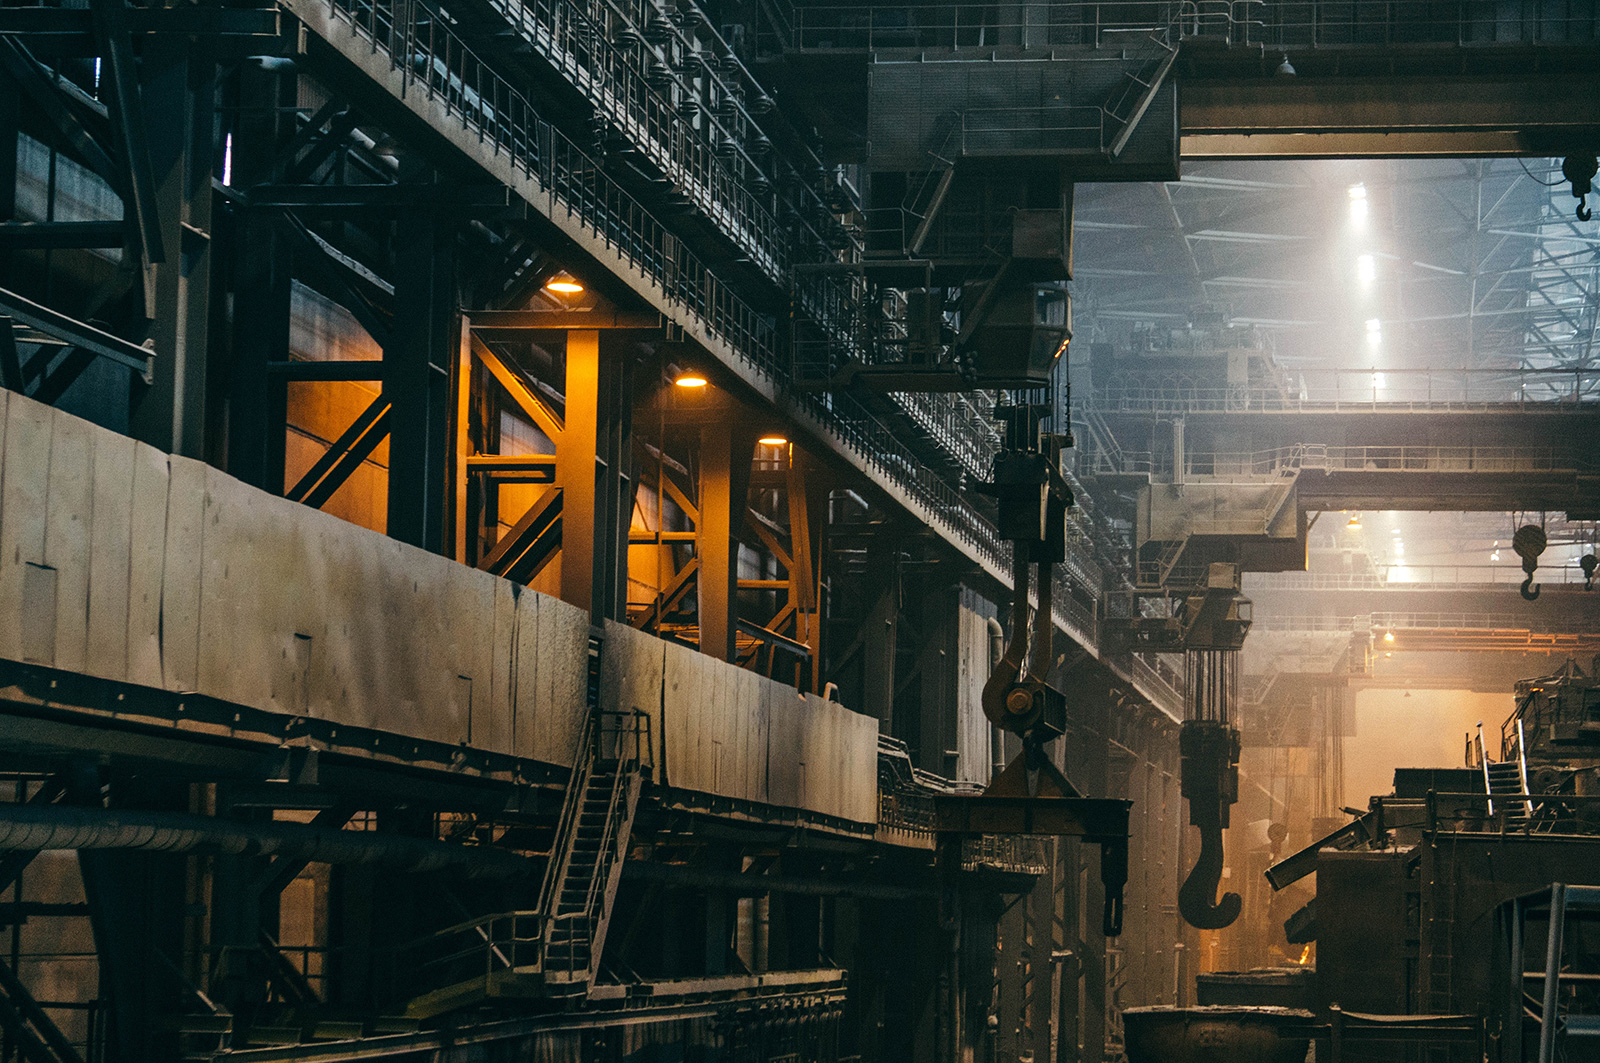 The cybersecurity of industrial companies remains low, potential damage can be severe